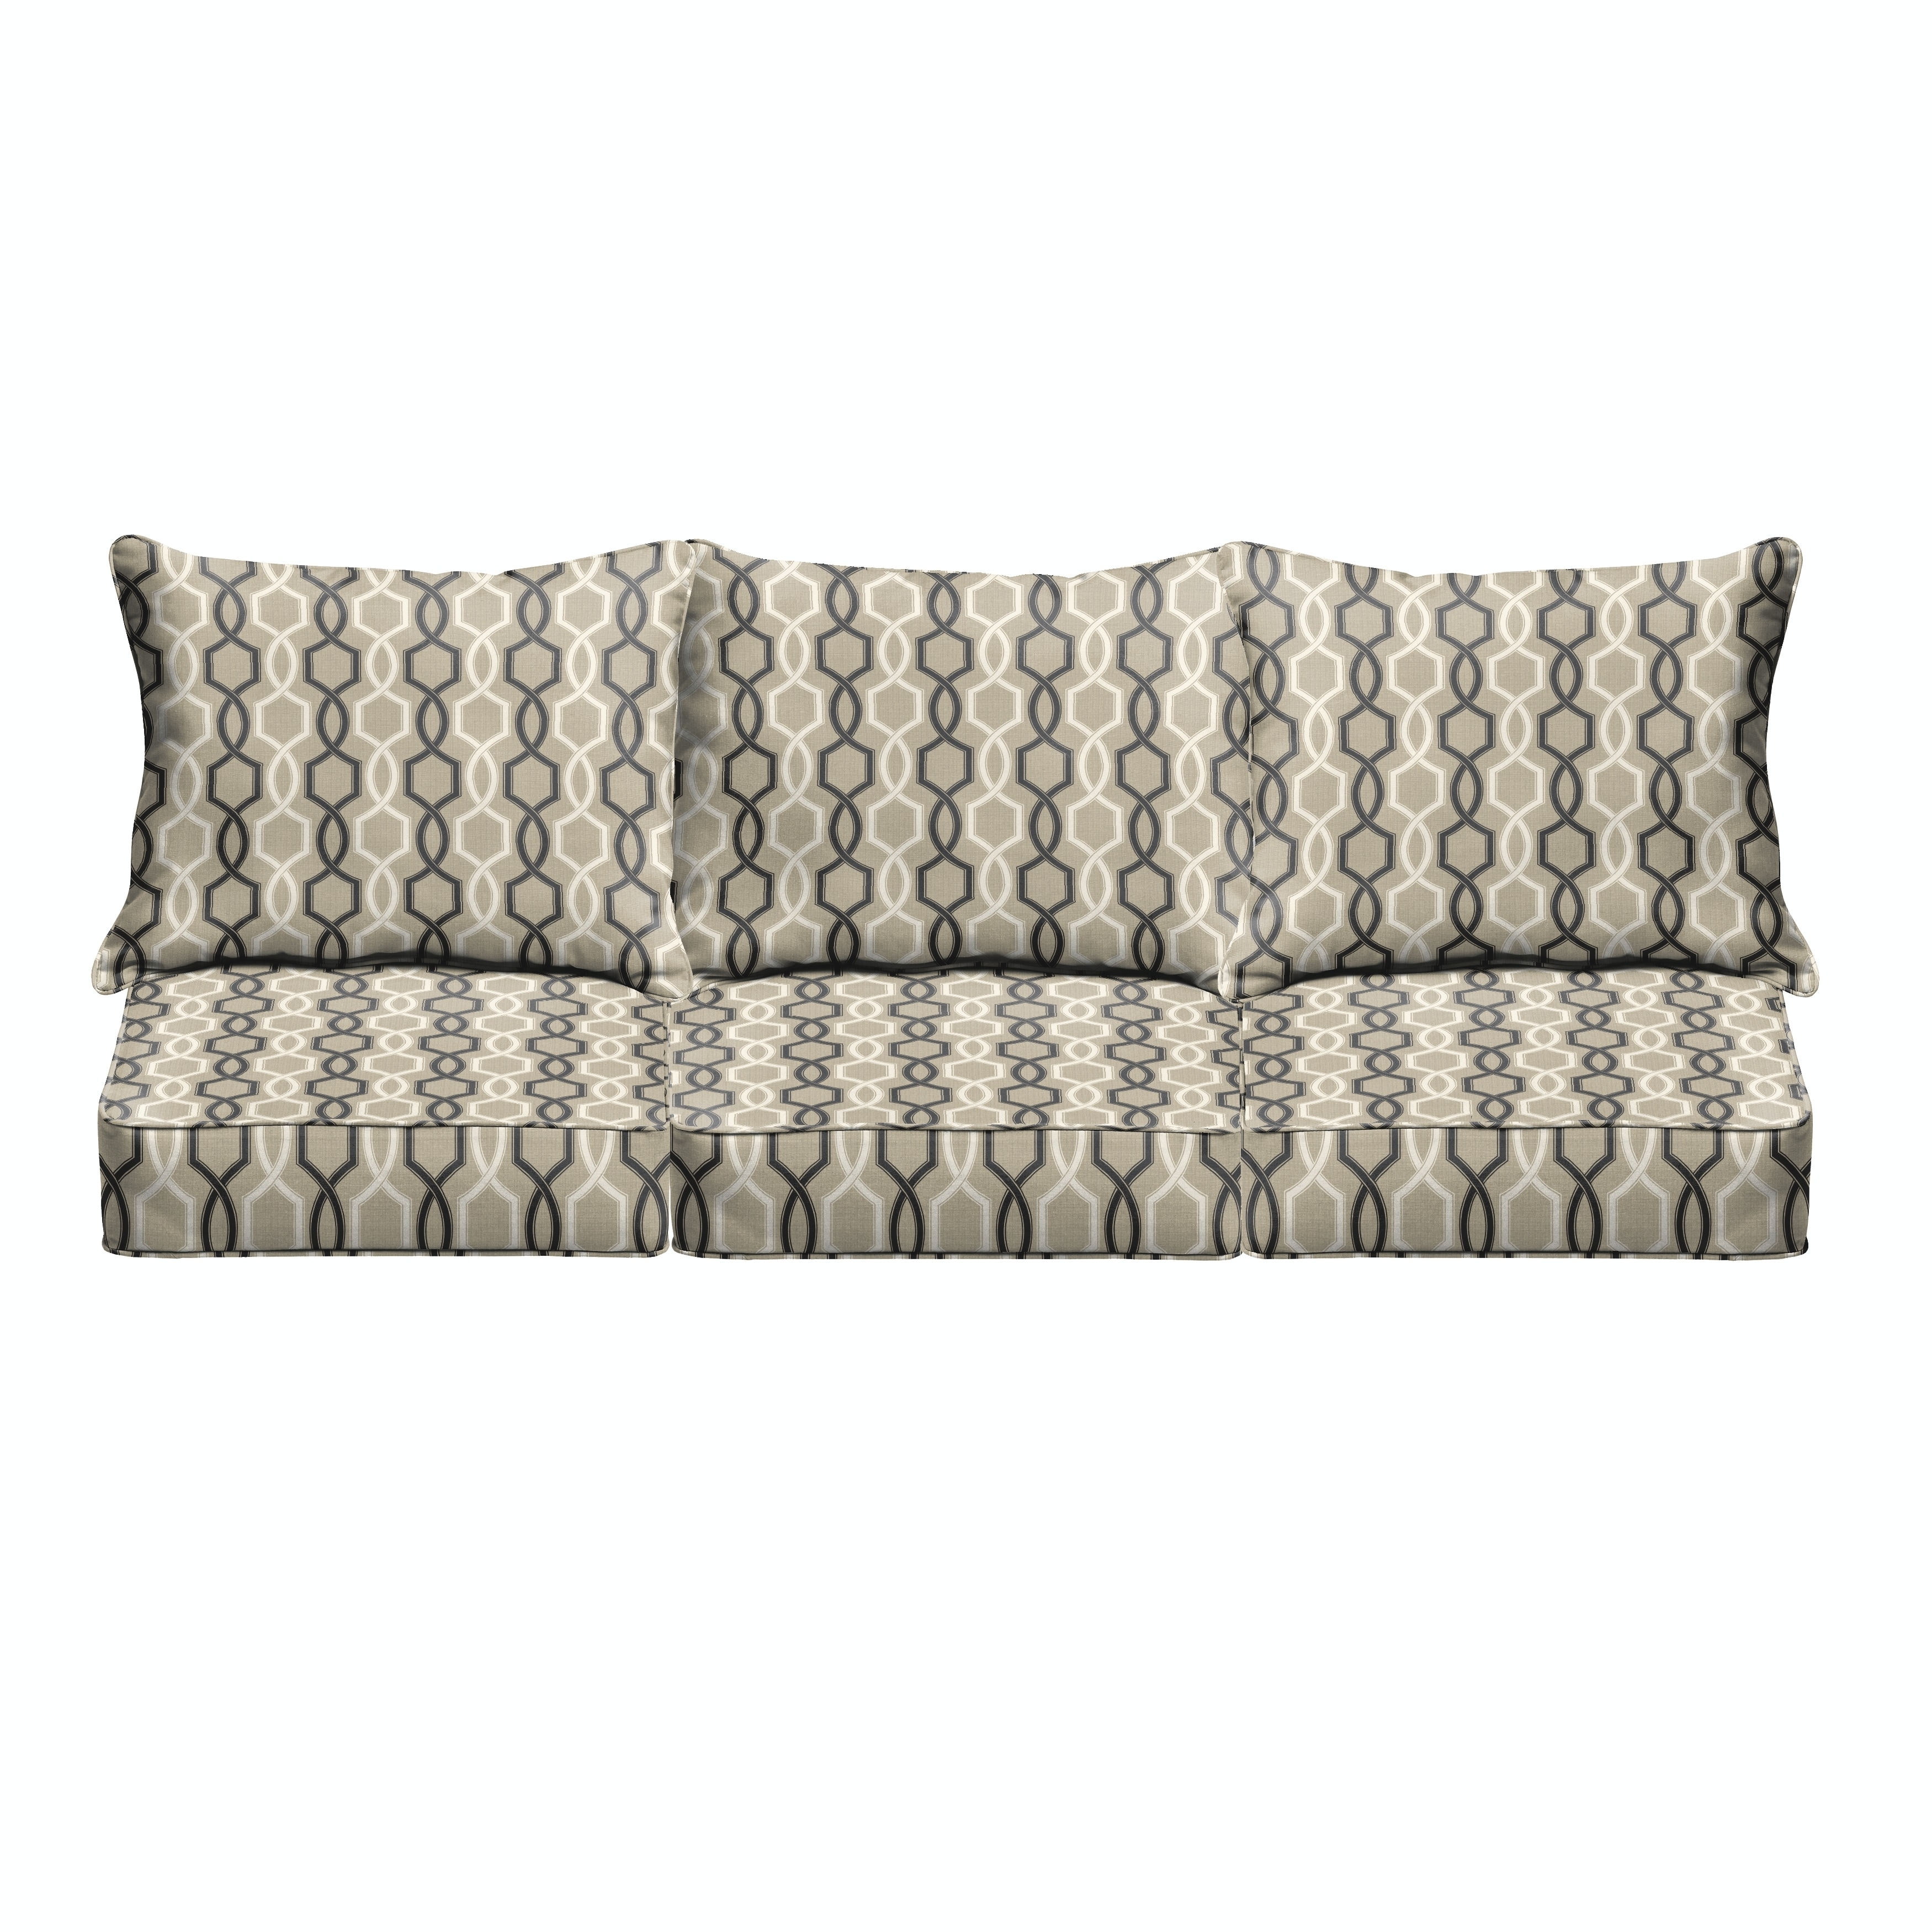 Humble and Haute Sloane Black and Tan Indoor/ Outdoor Corded Cushion and Pillow Sofa Set